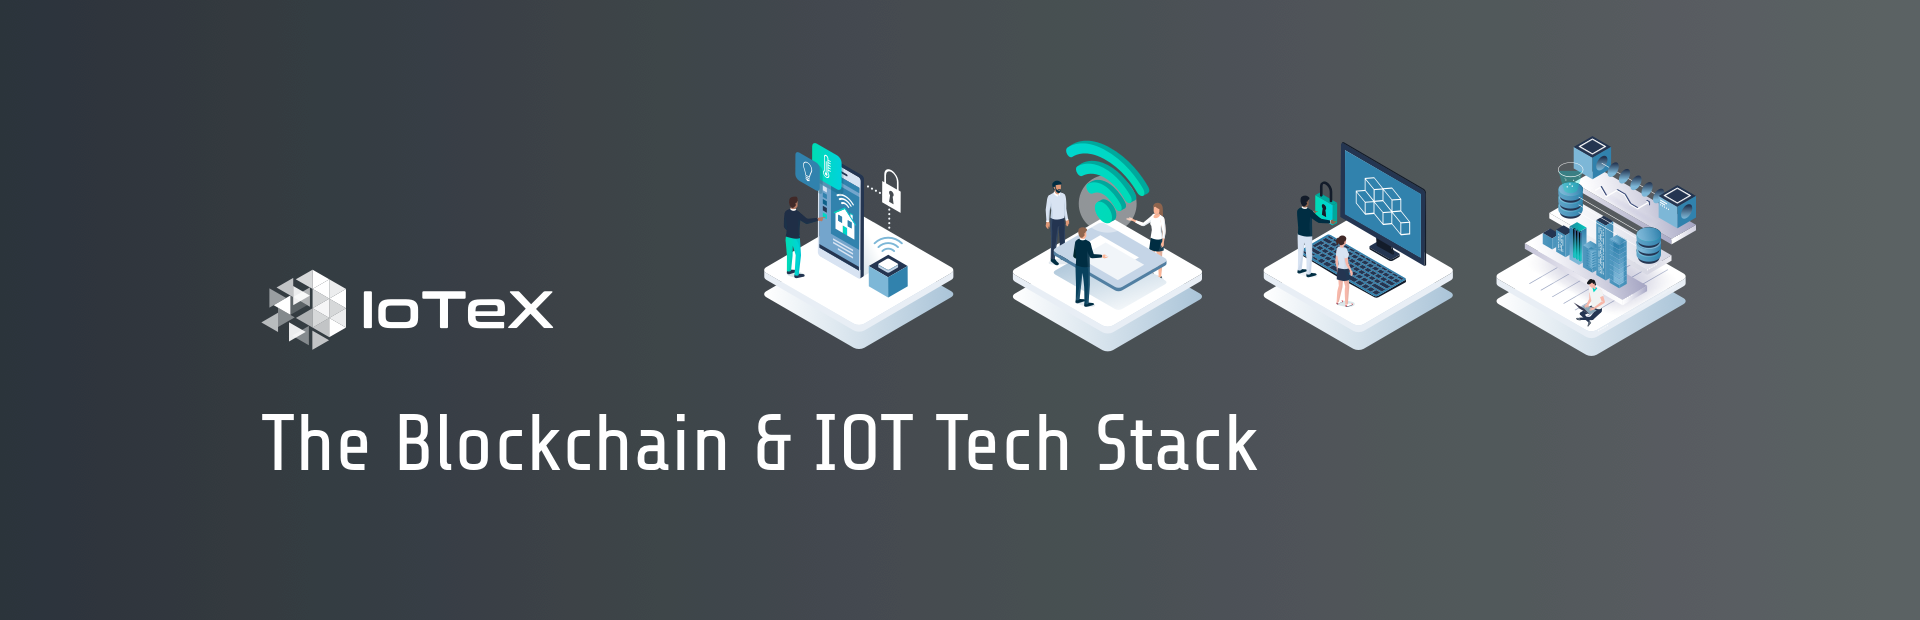 /the-blockchain-iot-tech-stack-163dd1d59d27 feature image